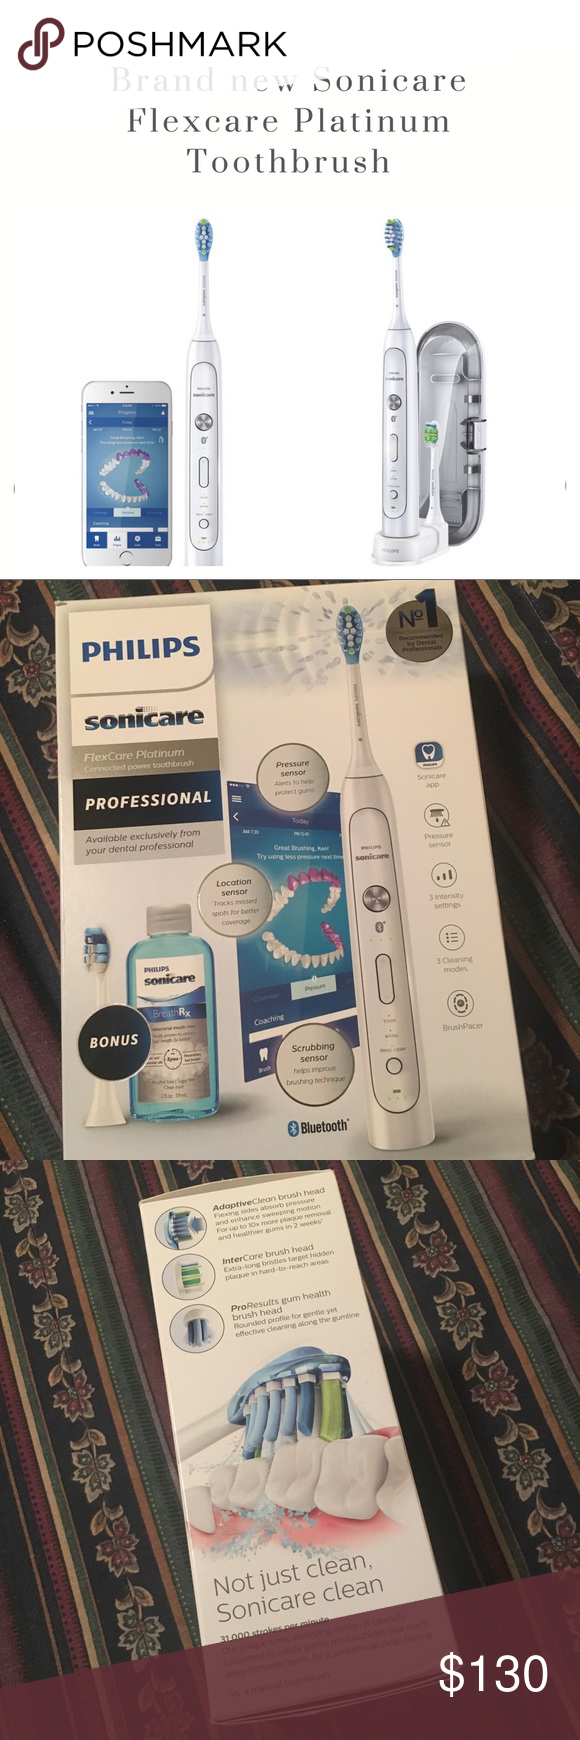 Philips Sonicare™ FlexCare Electric Toothbrush BRAND NEW